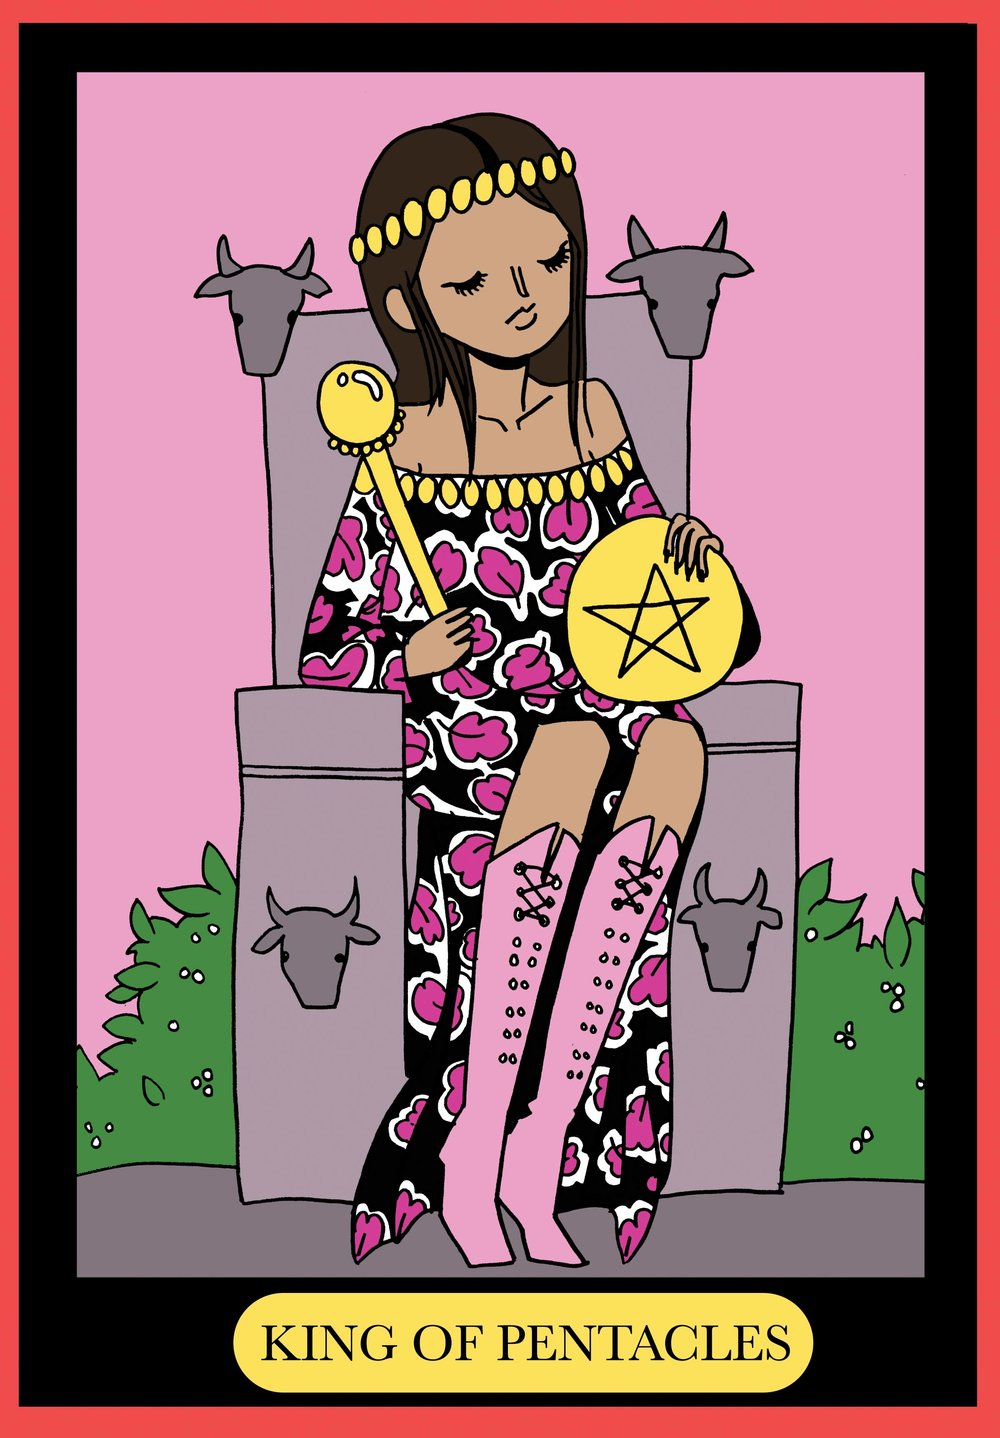 king-pentacles.jpg